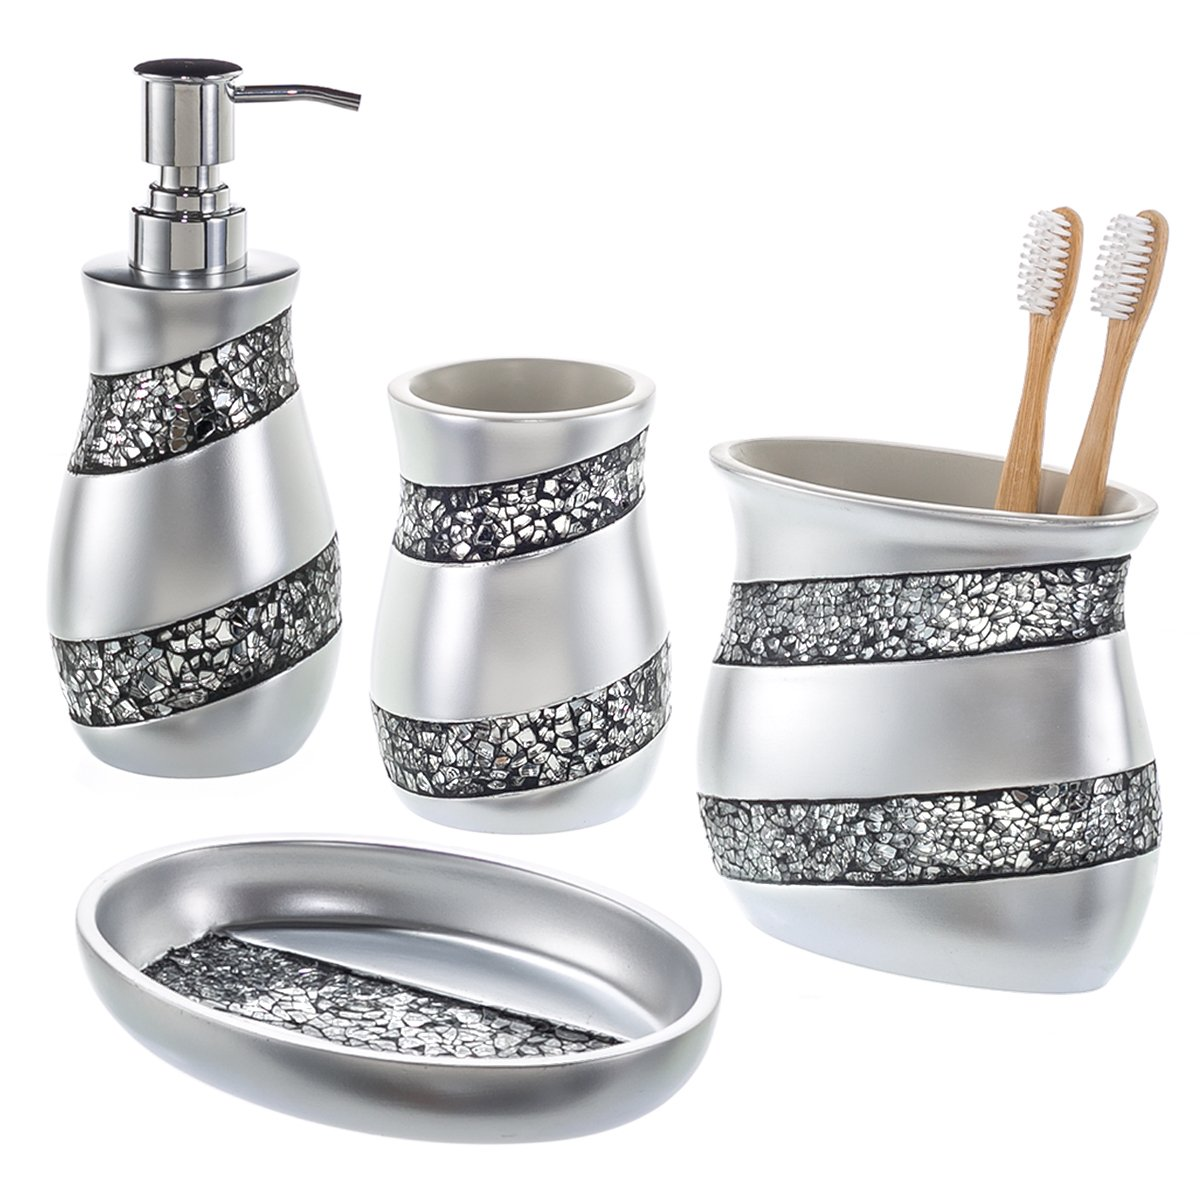 bathroom decor sets. Amazon com  Creative Scents Bathroom Accessories set 4 Piece Silver Mosaic Glass Luxury Gift Set Includes Soap Dispenser Toothbrush Holder